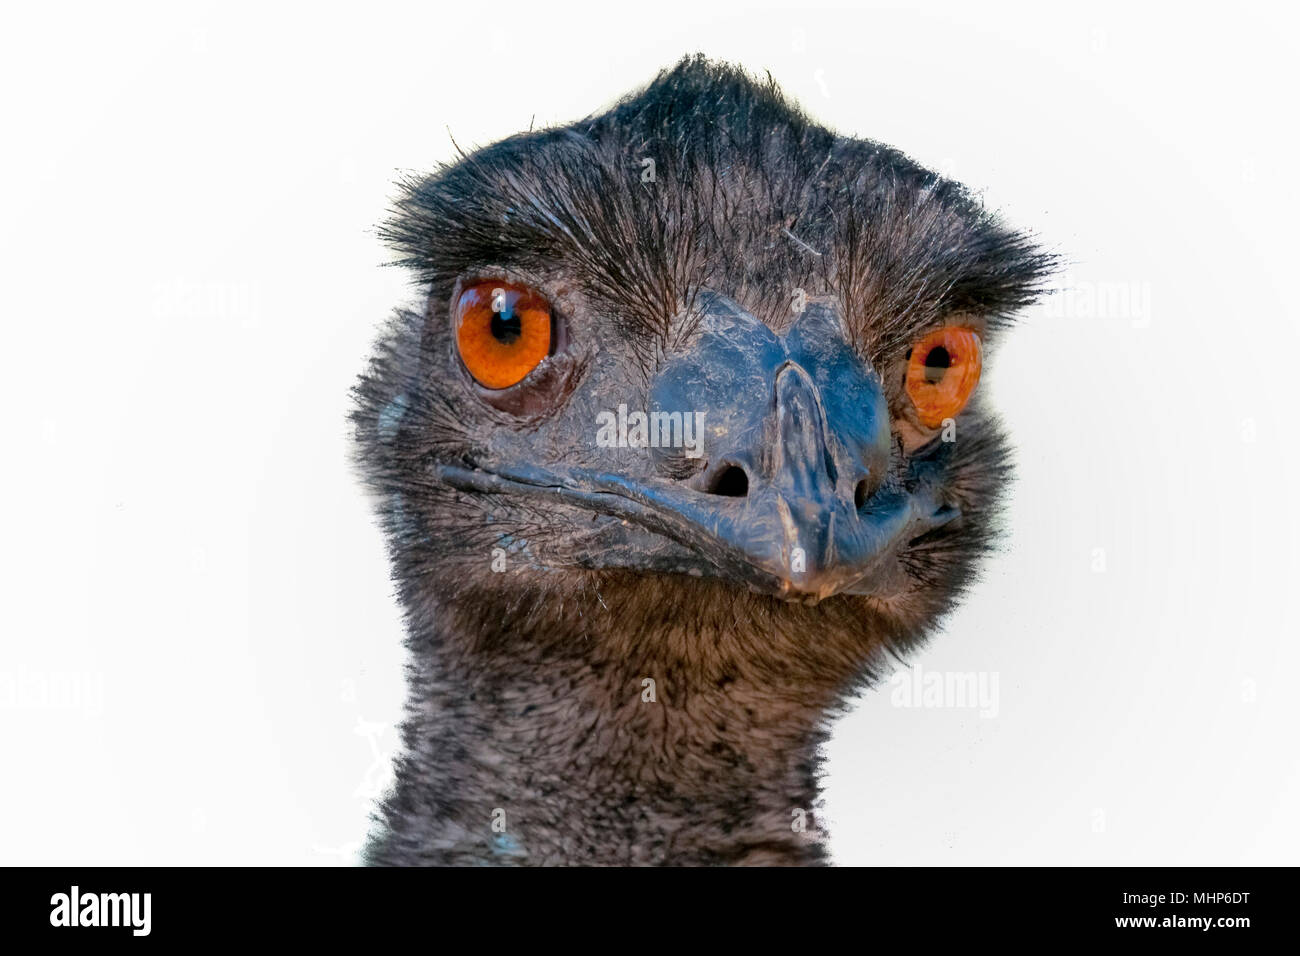 Australian Ostrich head close up looking at you on white background - Stock Image